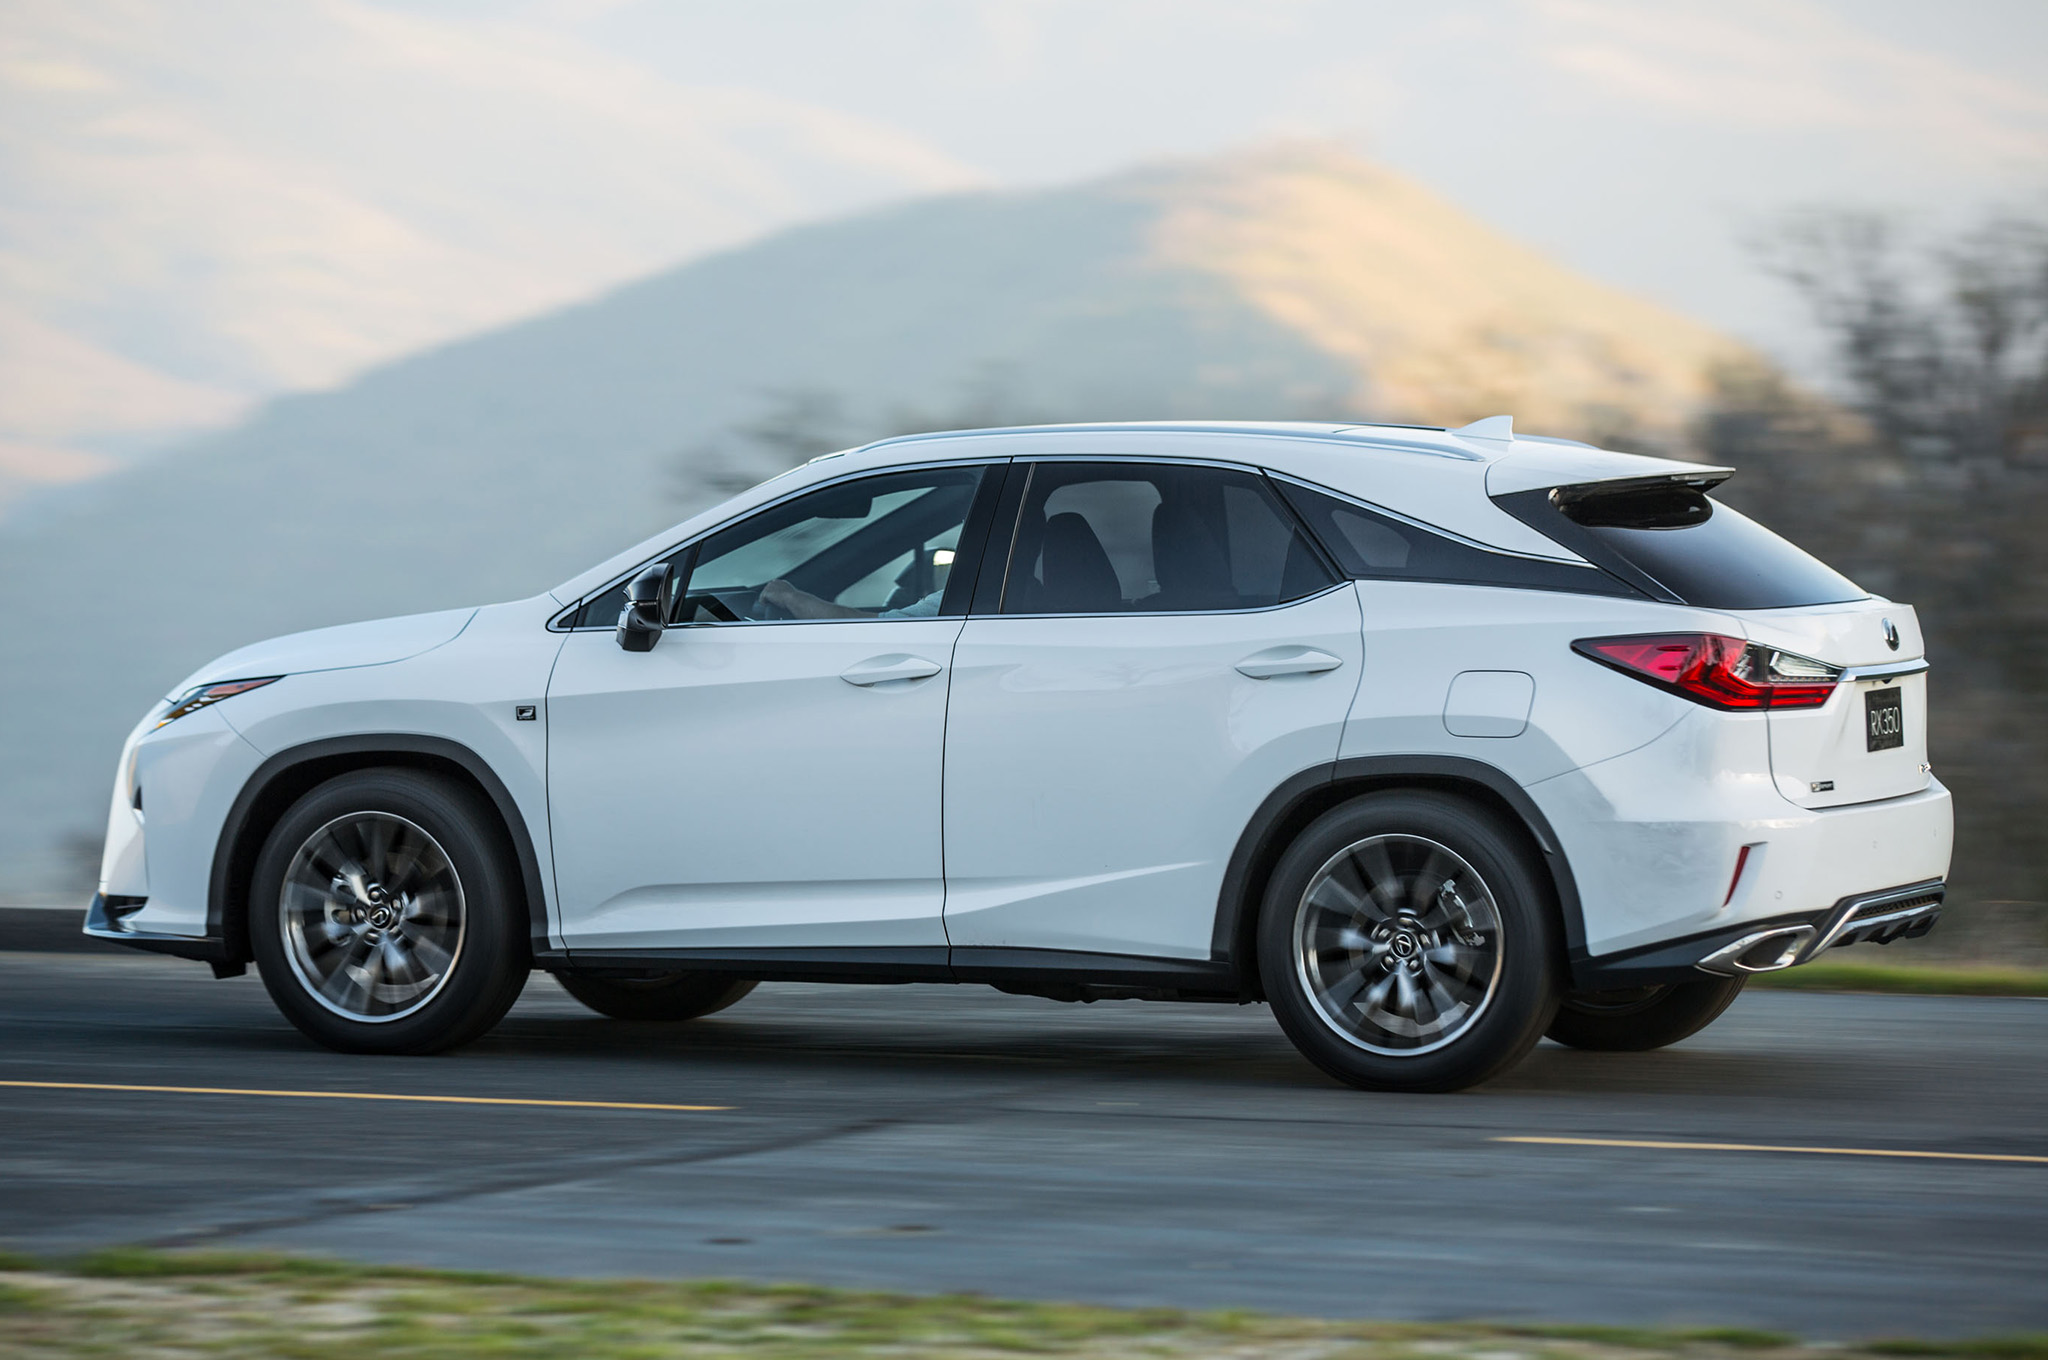 lexus rx 350 and rx 450h to feature bridgestone fuel-efficient tires